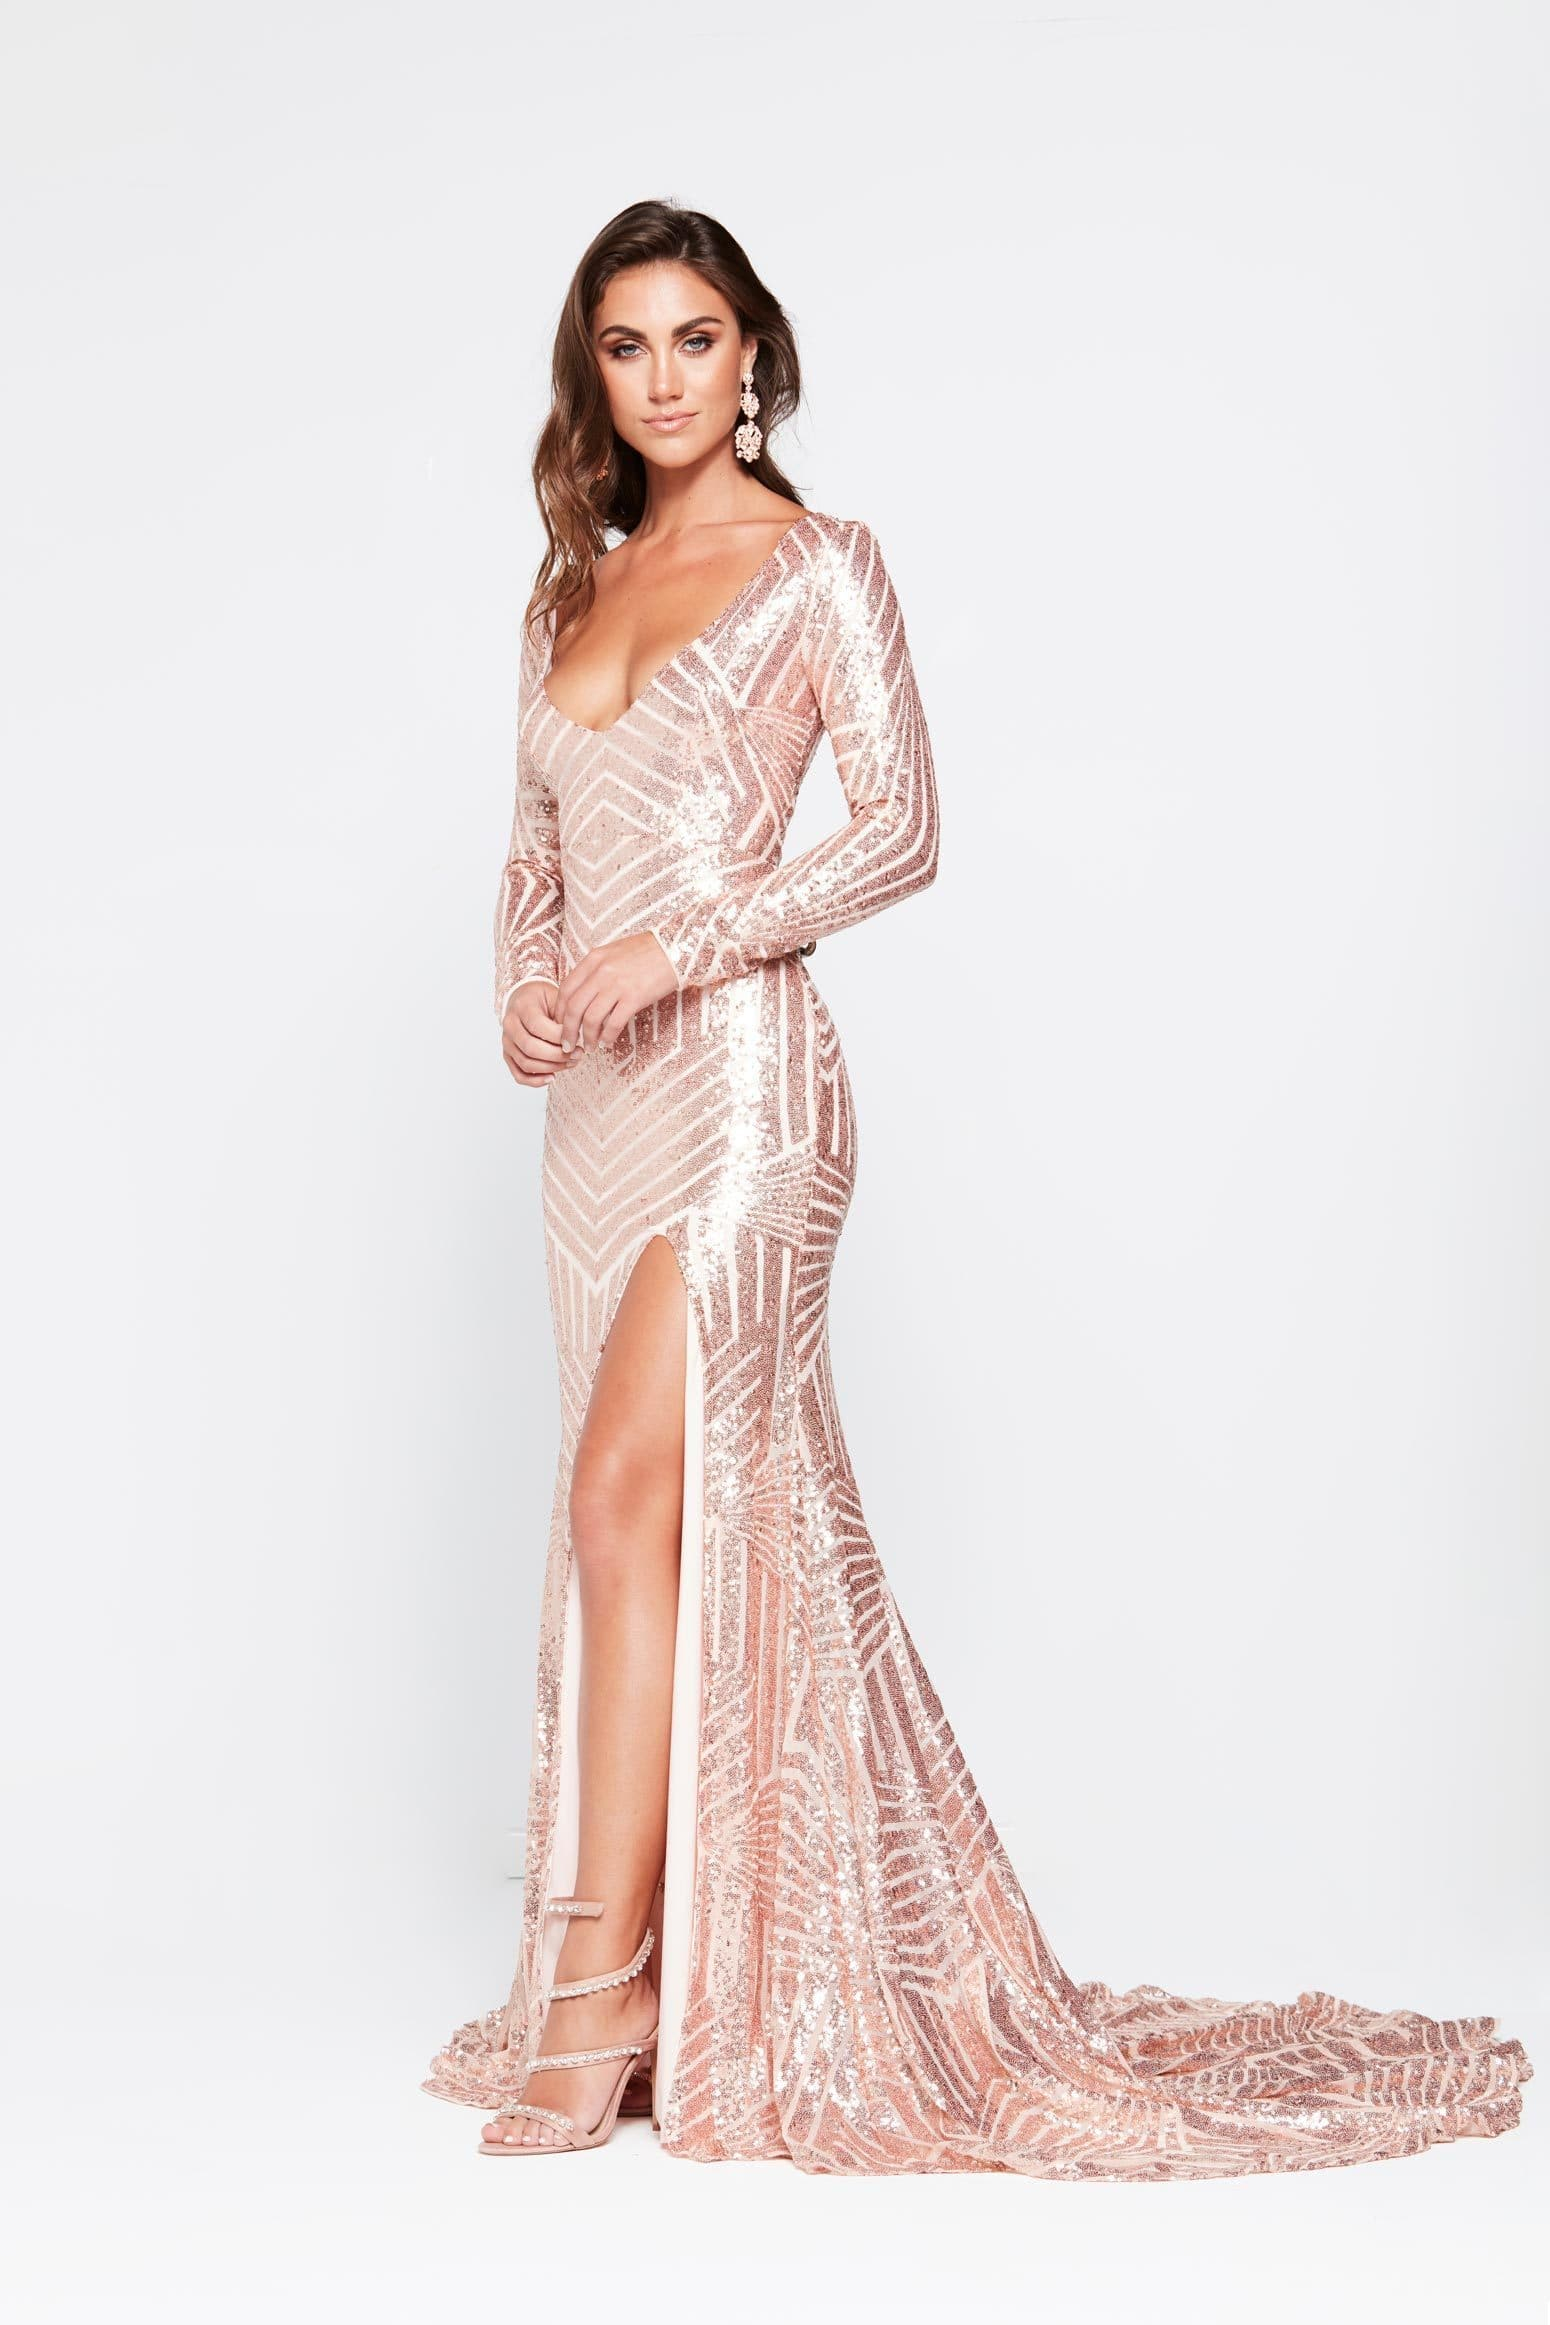 Kaya Formal Dress - Rose Gold Sequins Long Sleeve Maxi Gown Side Split